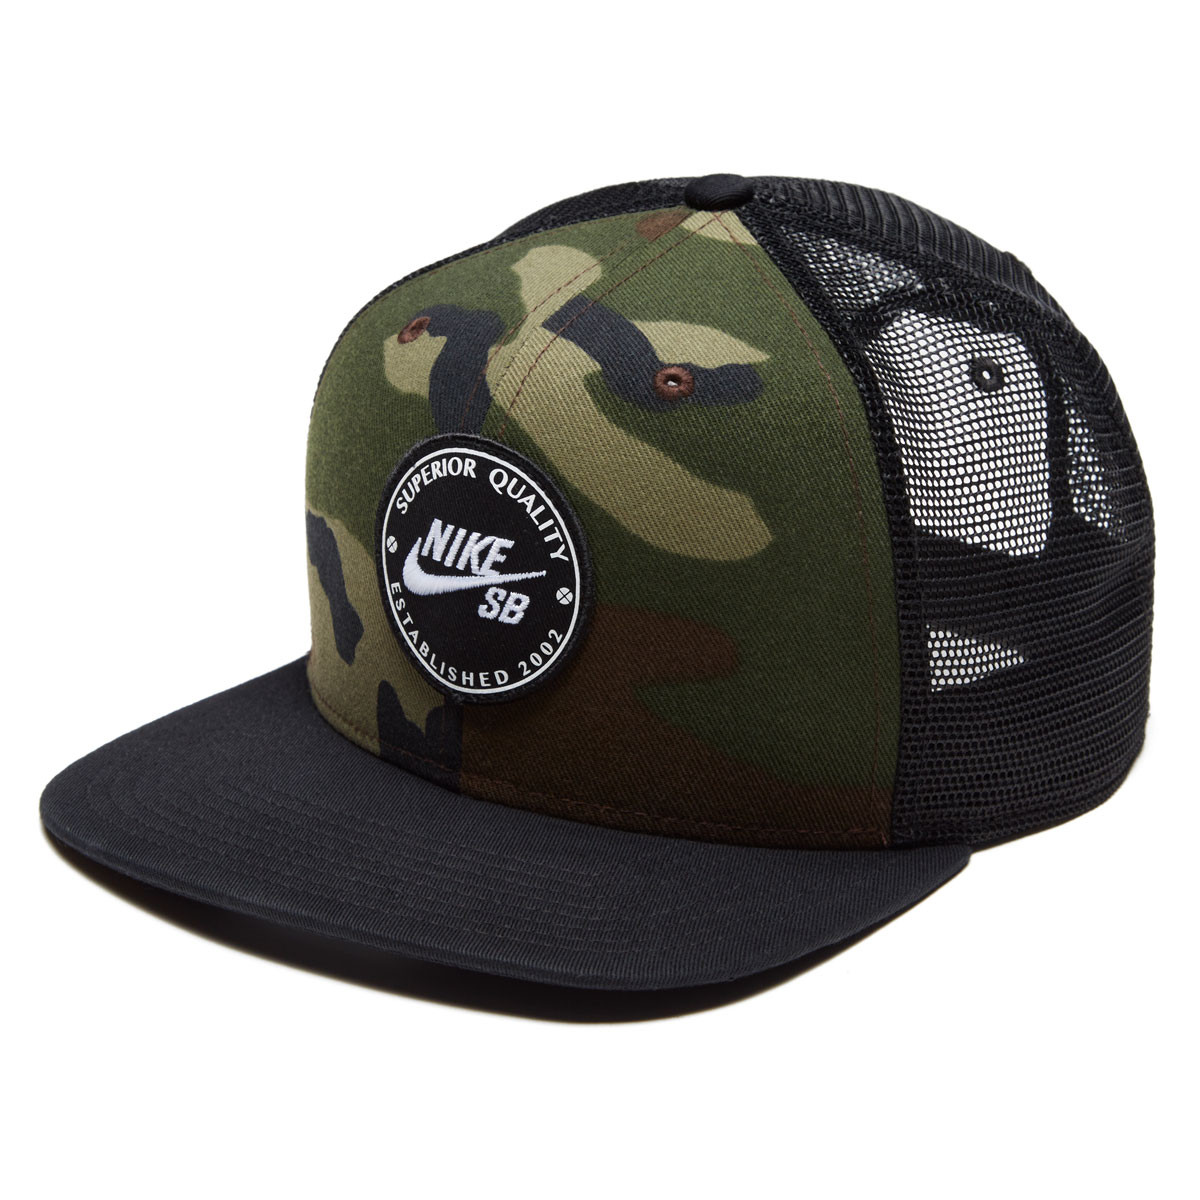 8b2e9db053 Nike SB Pro Patch Trucker Hat - Medium Olive/Black/Black/Black